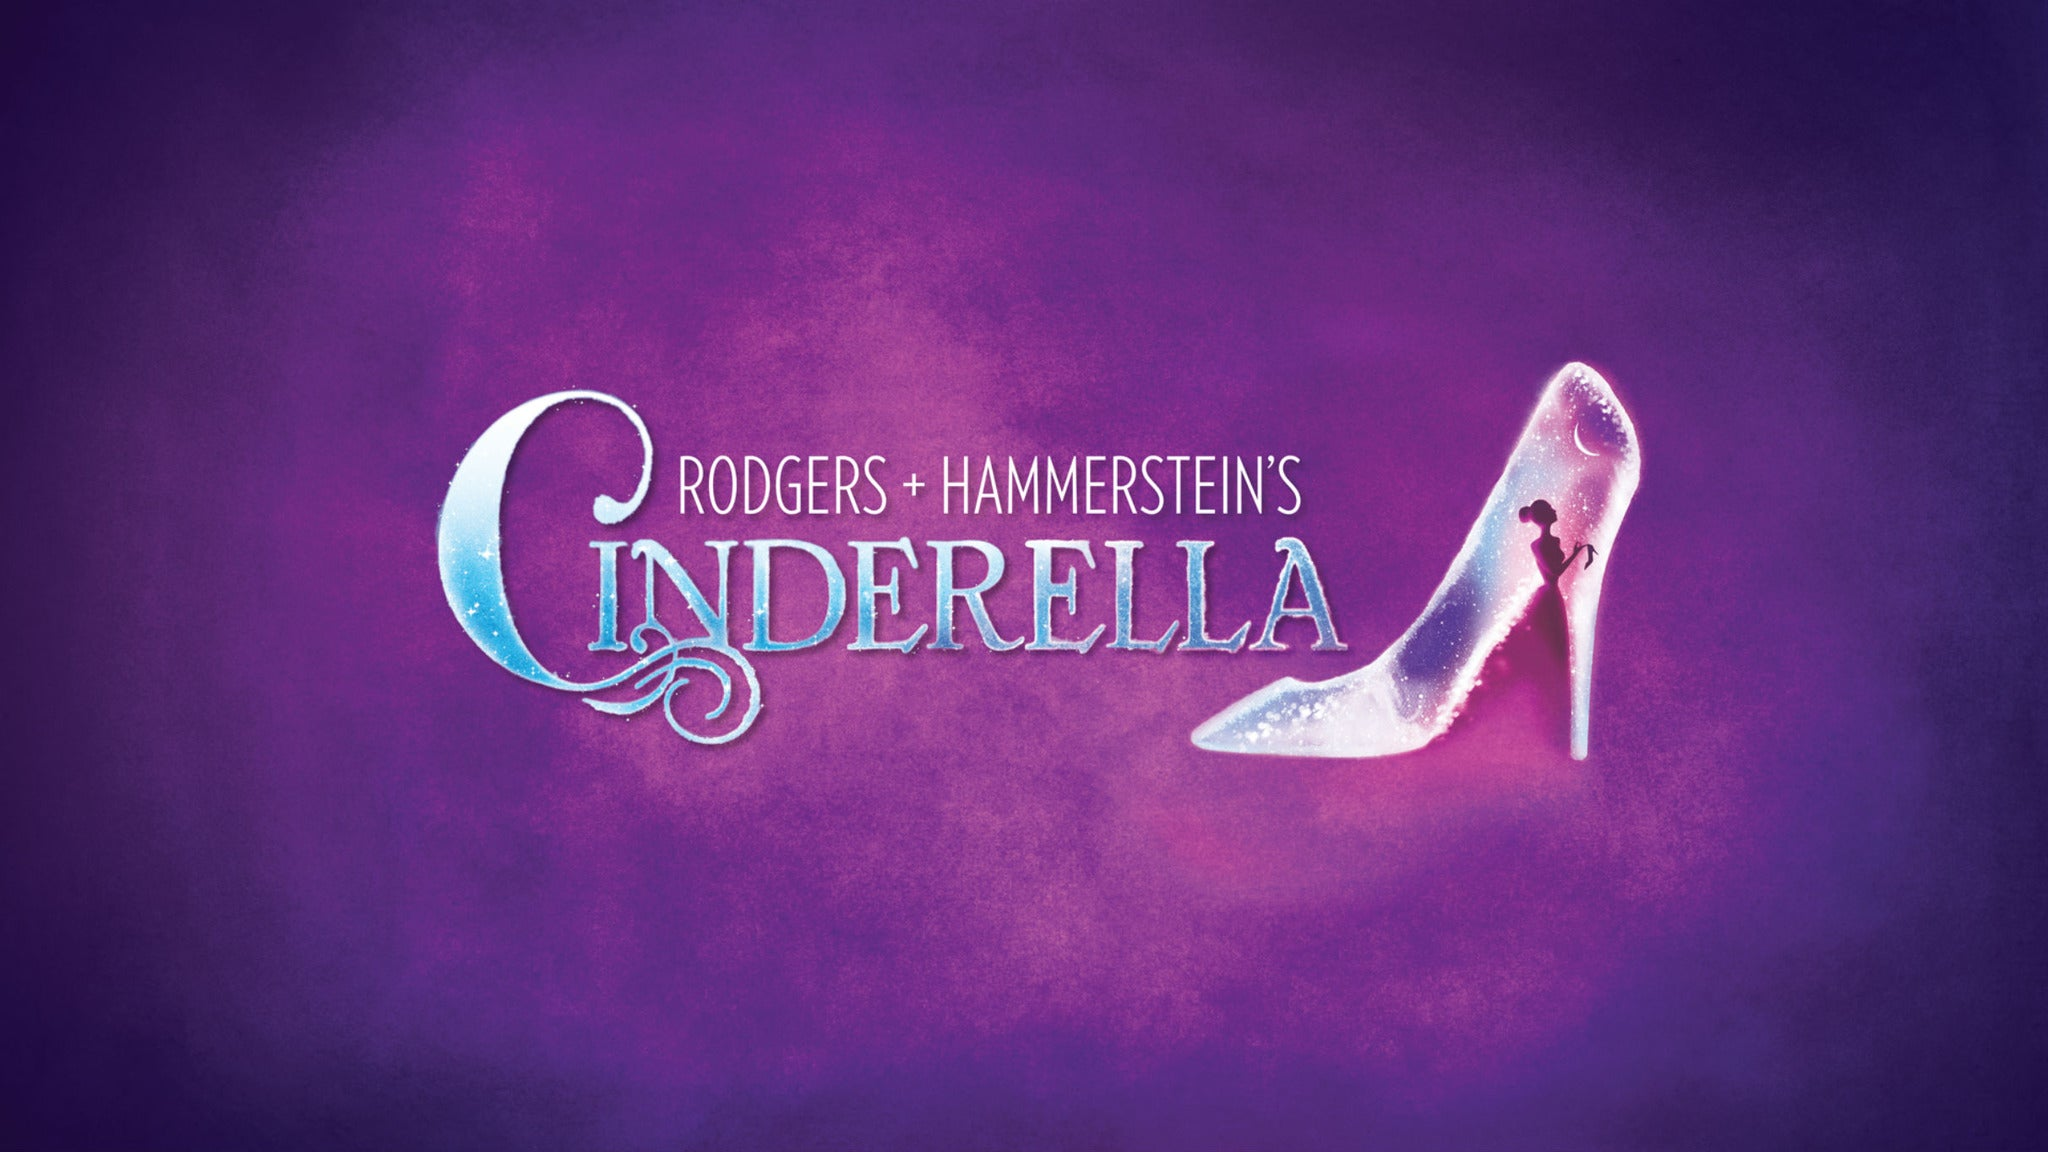 Cinderella-Theater at McCallum Theatre